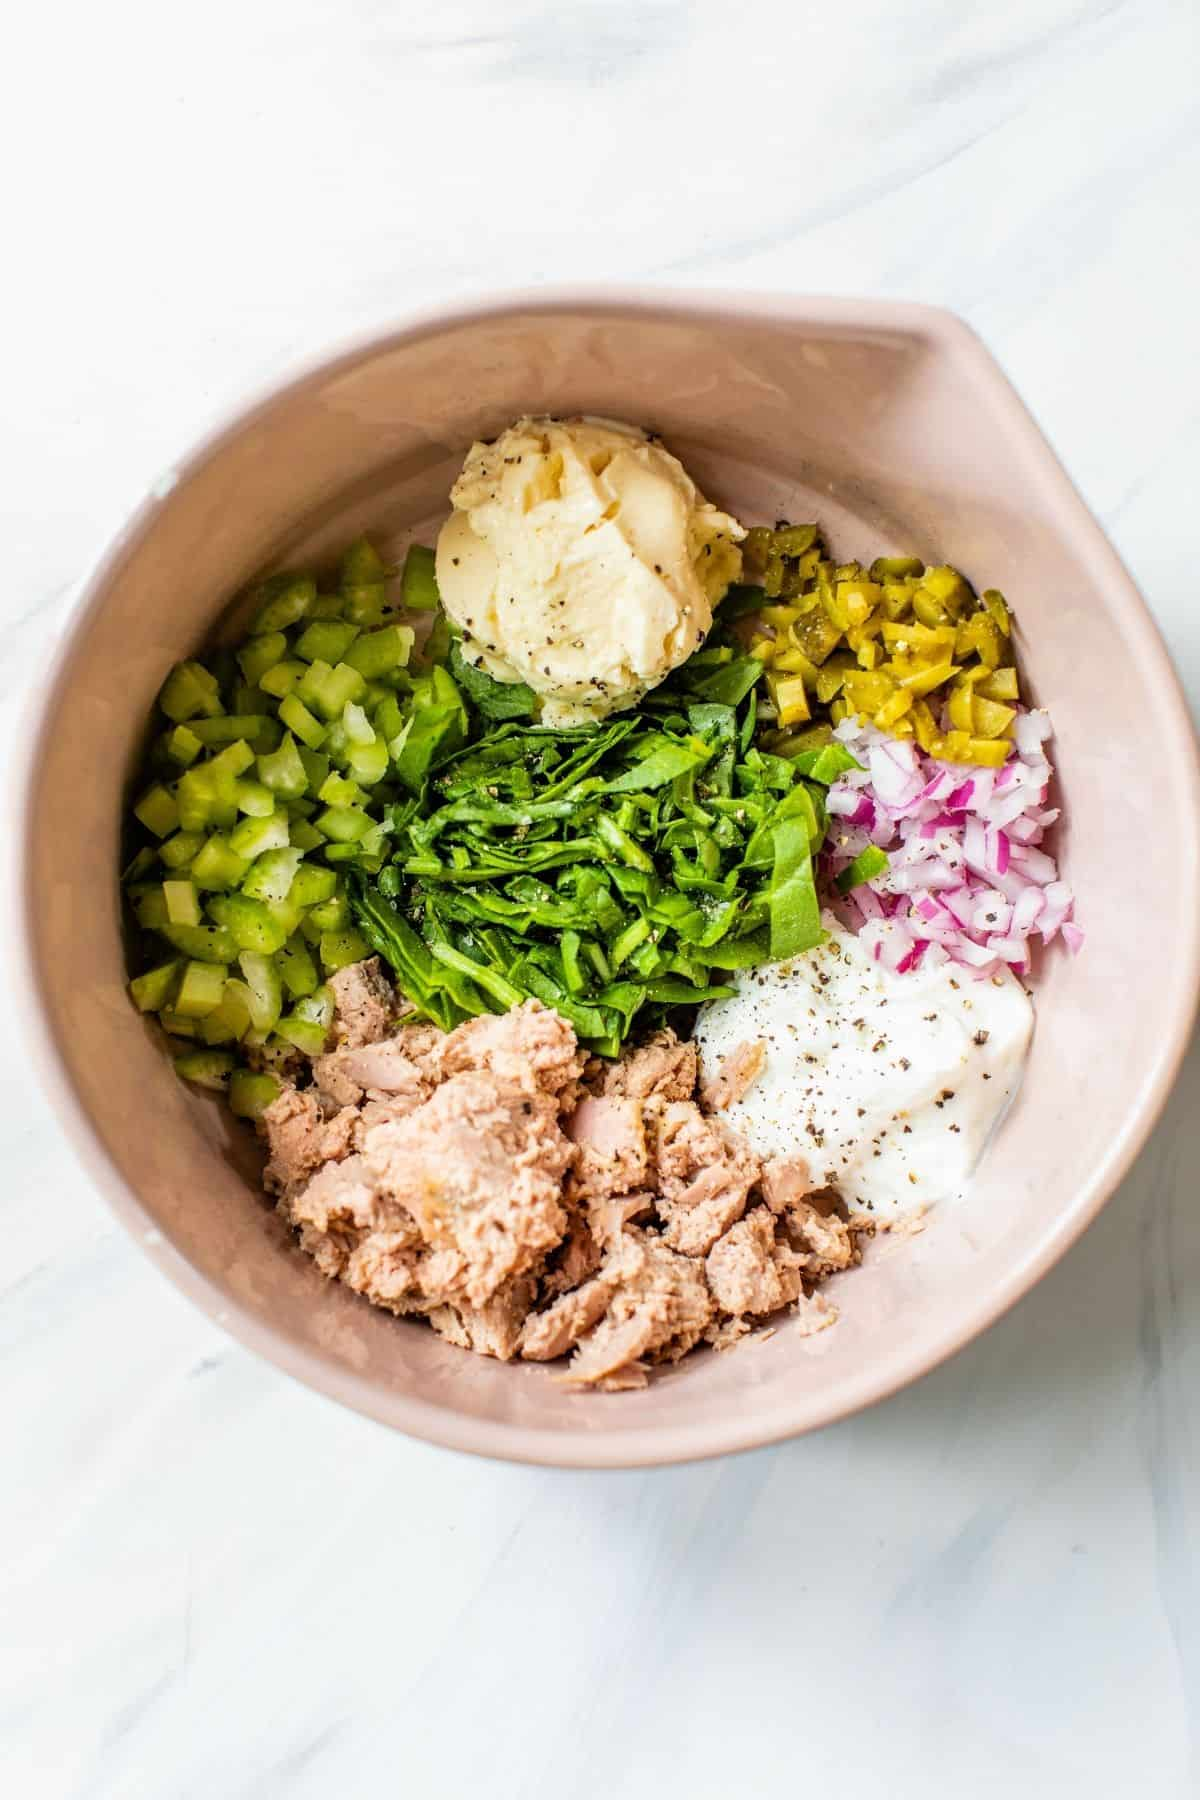 ingredients for tuna salad added to a large bowl